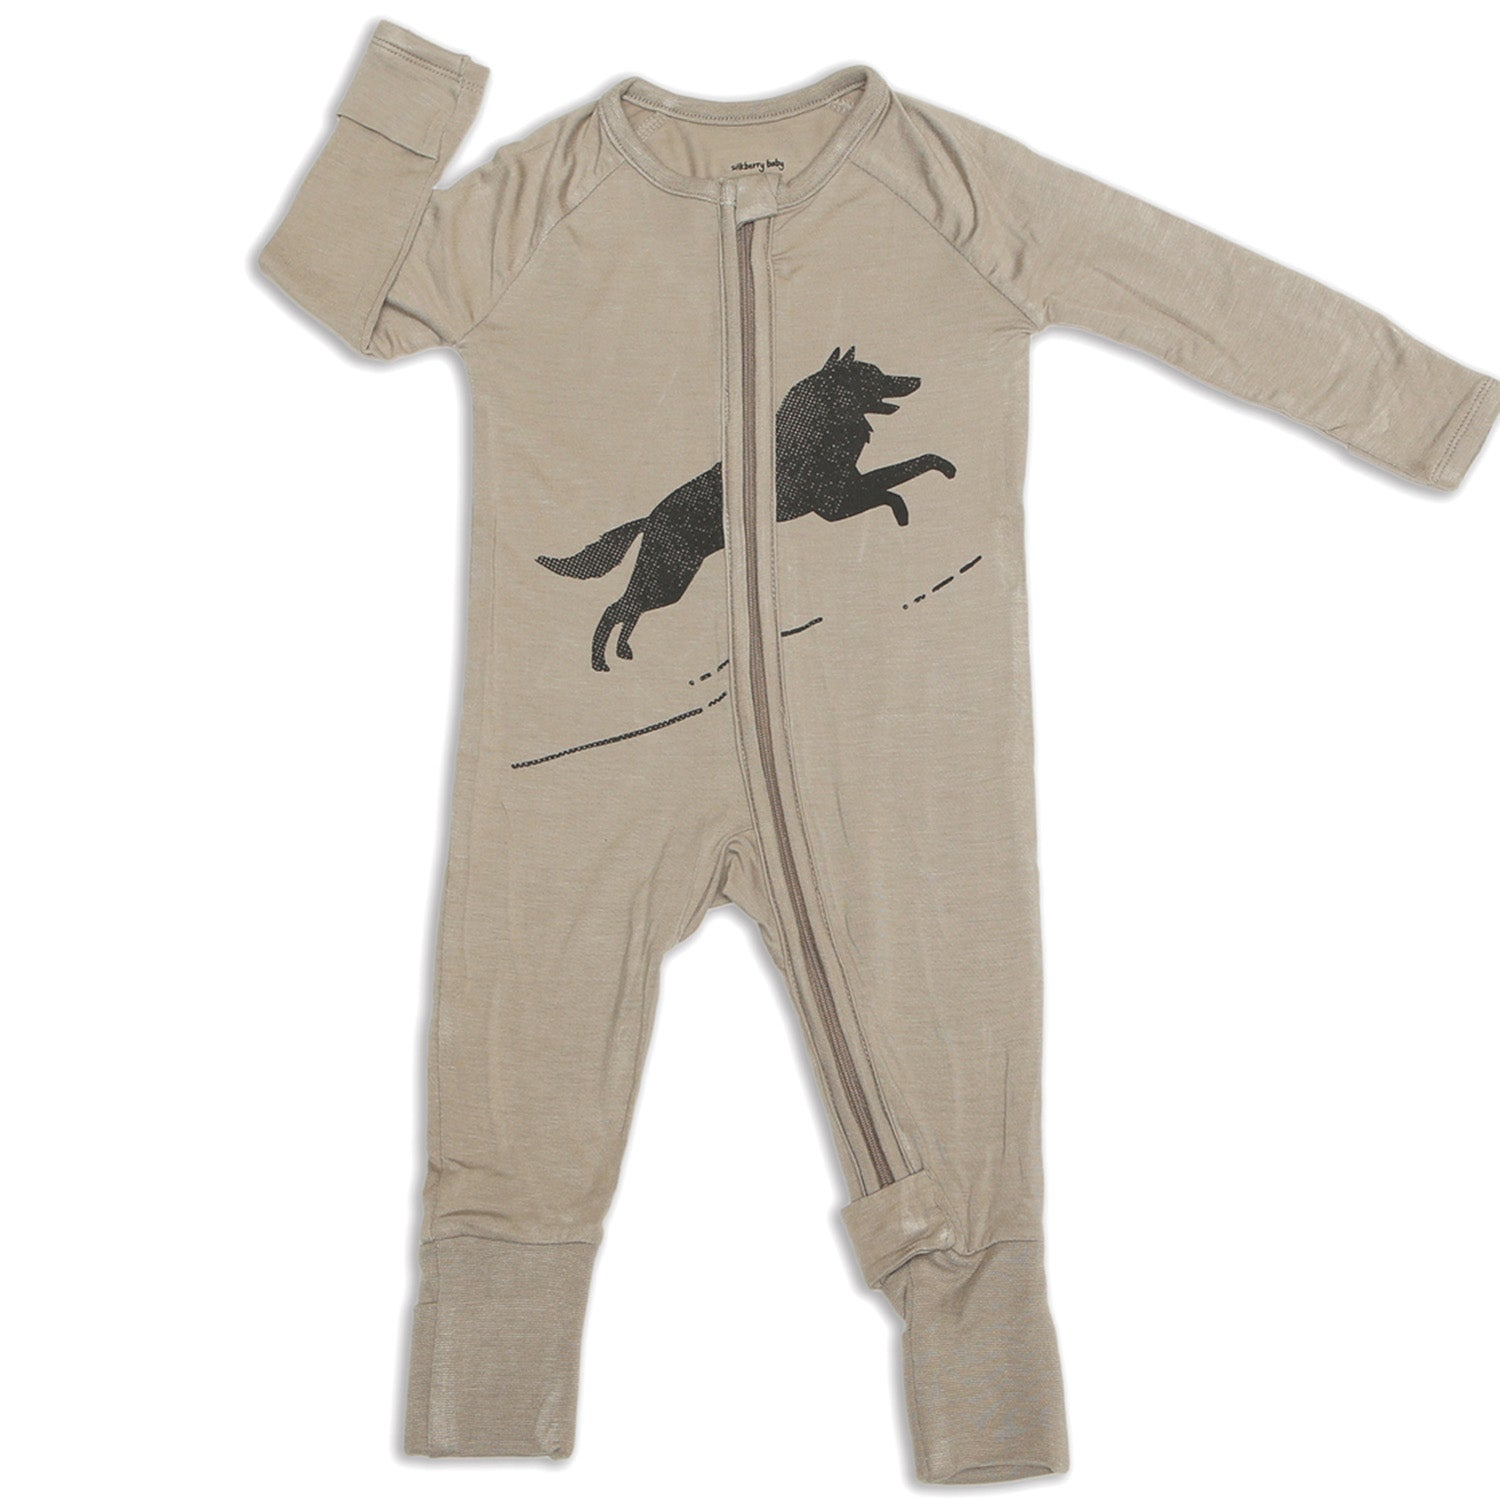 Silkberry Baby Bamboo Long Sleeve Romper w/ Two-way zipper - Mocha